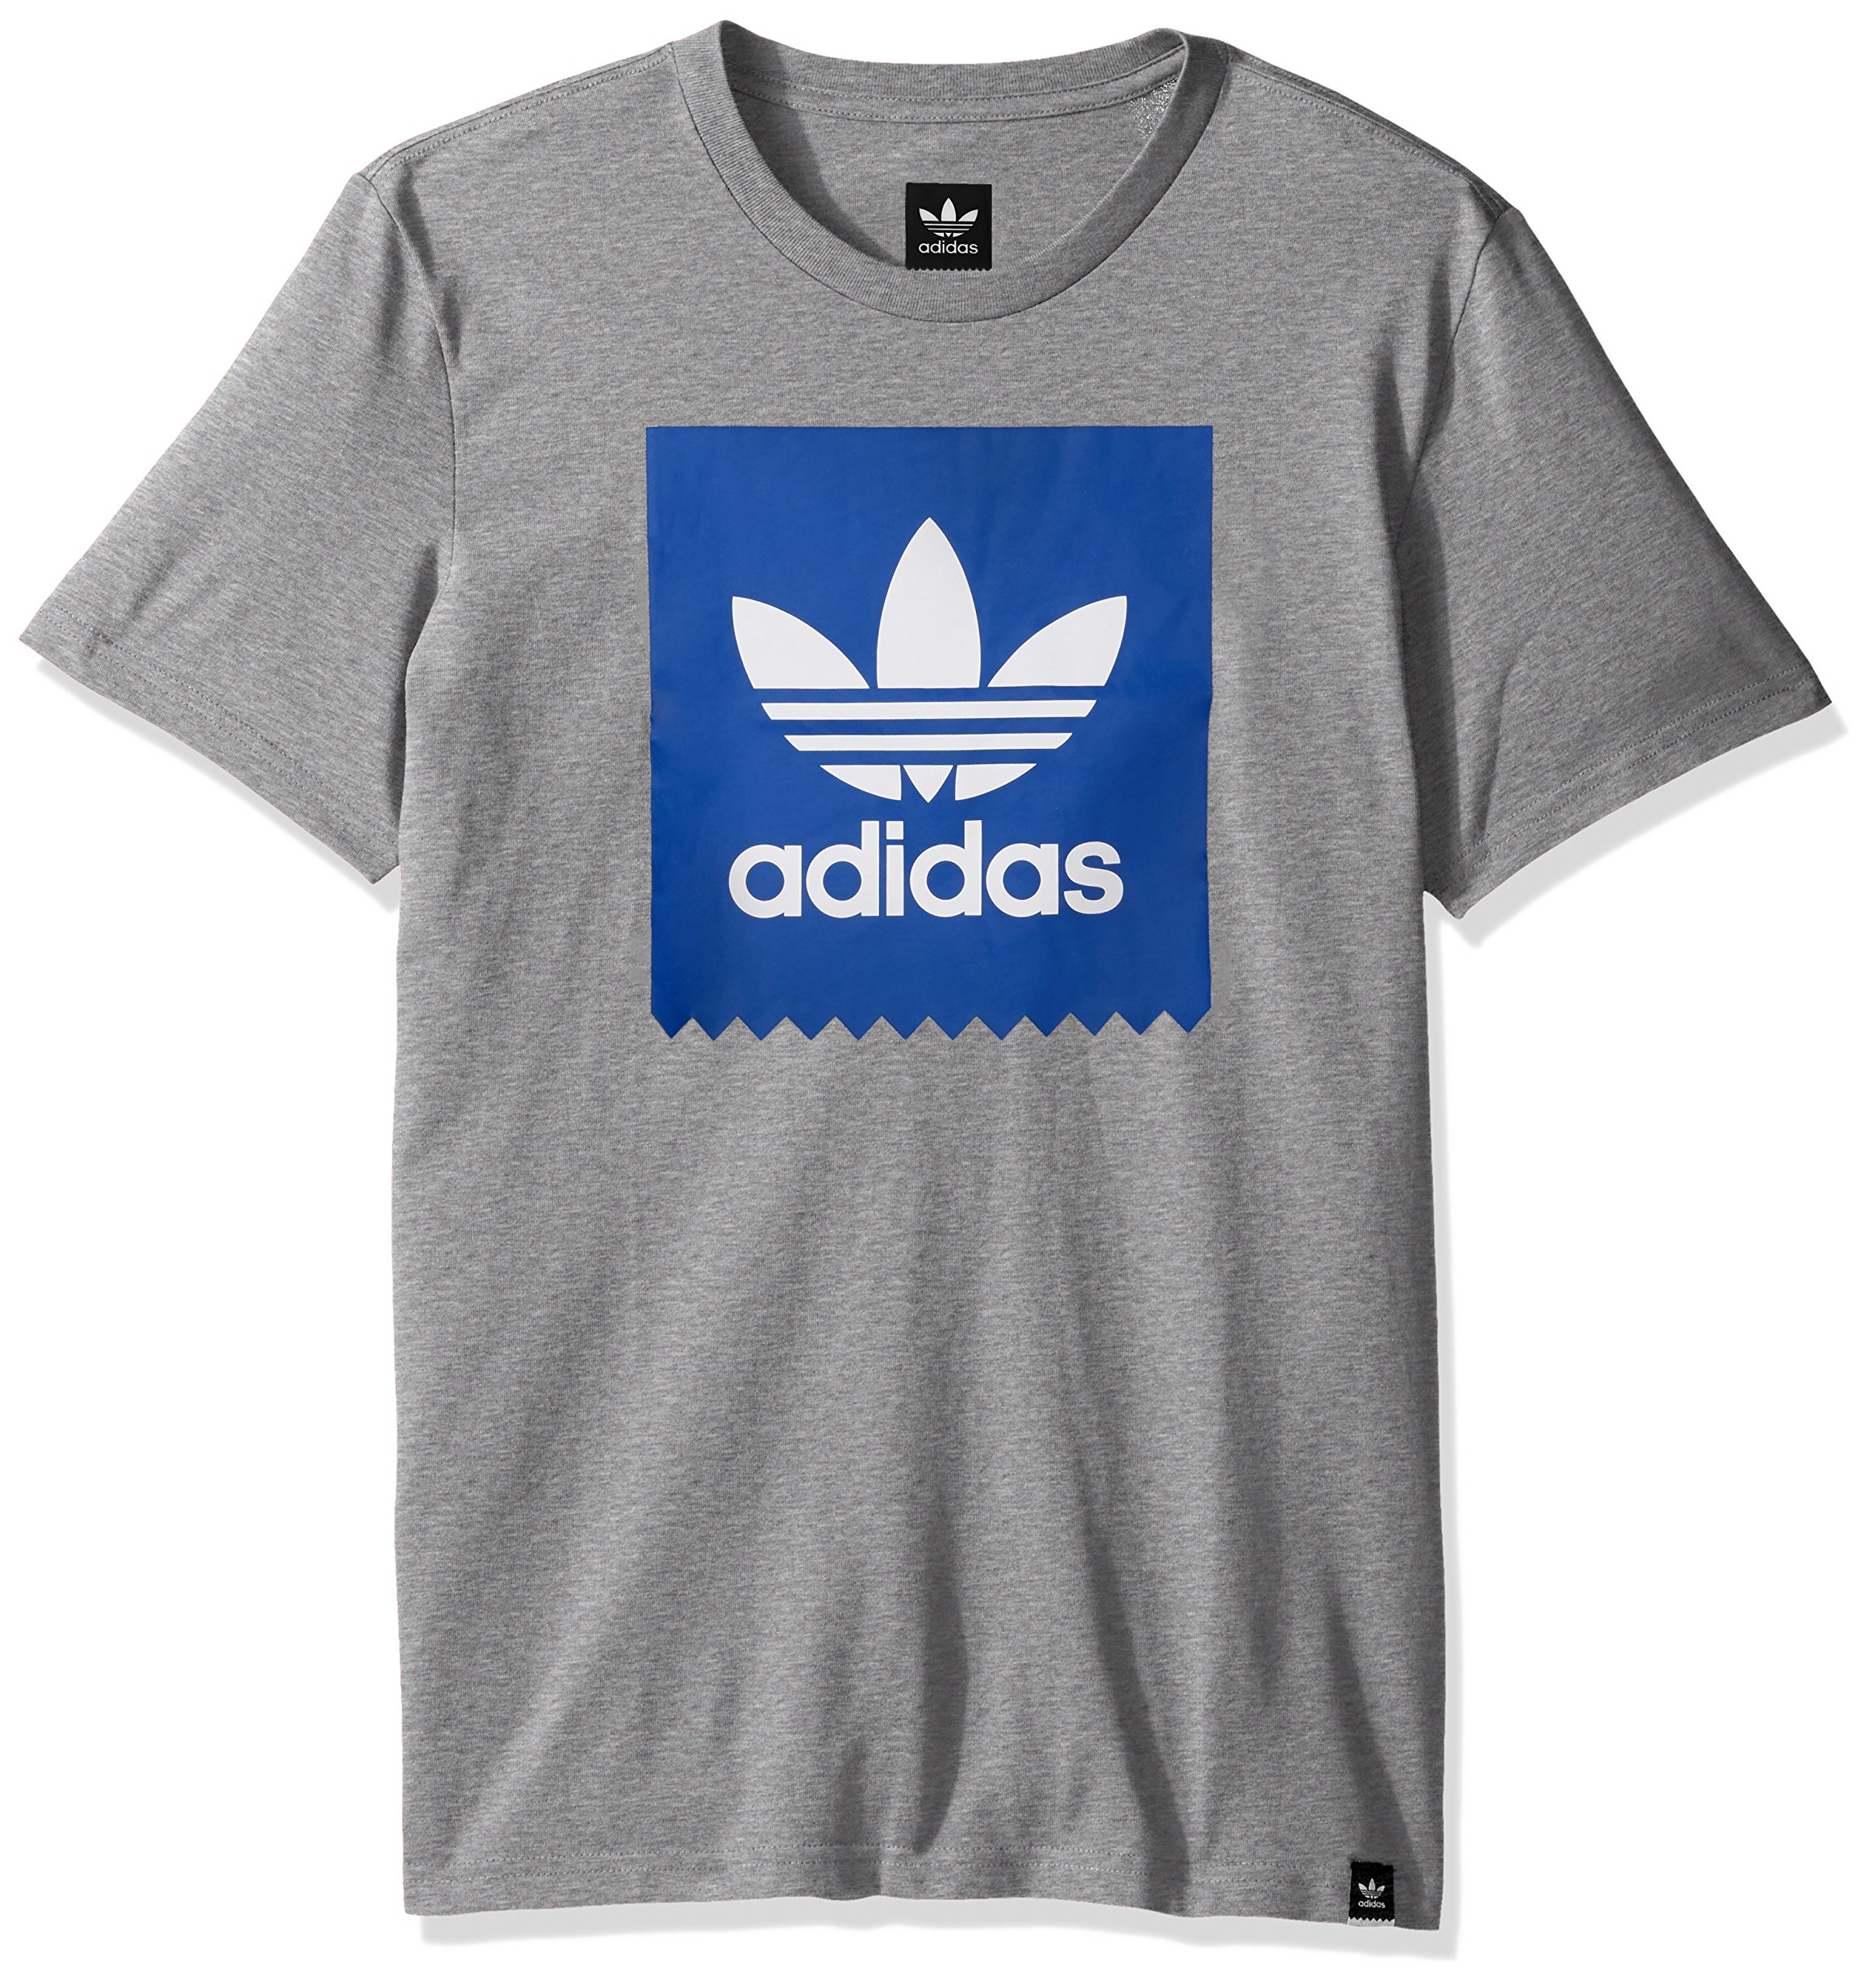 adidas Originals Men's Skateboarding Blackbird Tee, core Heather/Collegiate Royal, XS by adidas Originals (Image #1)